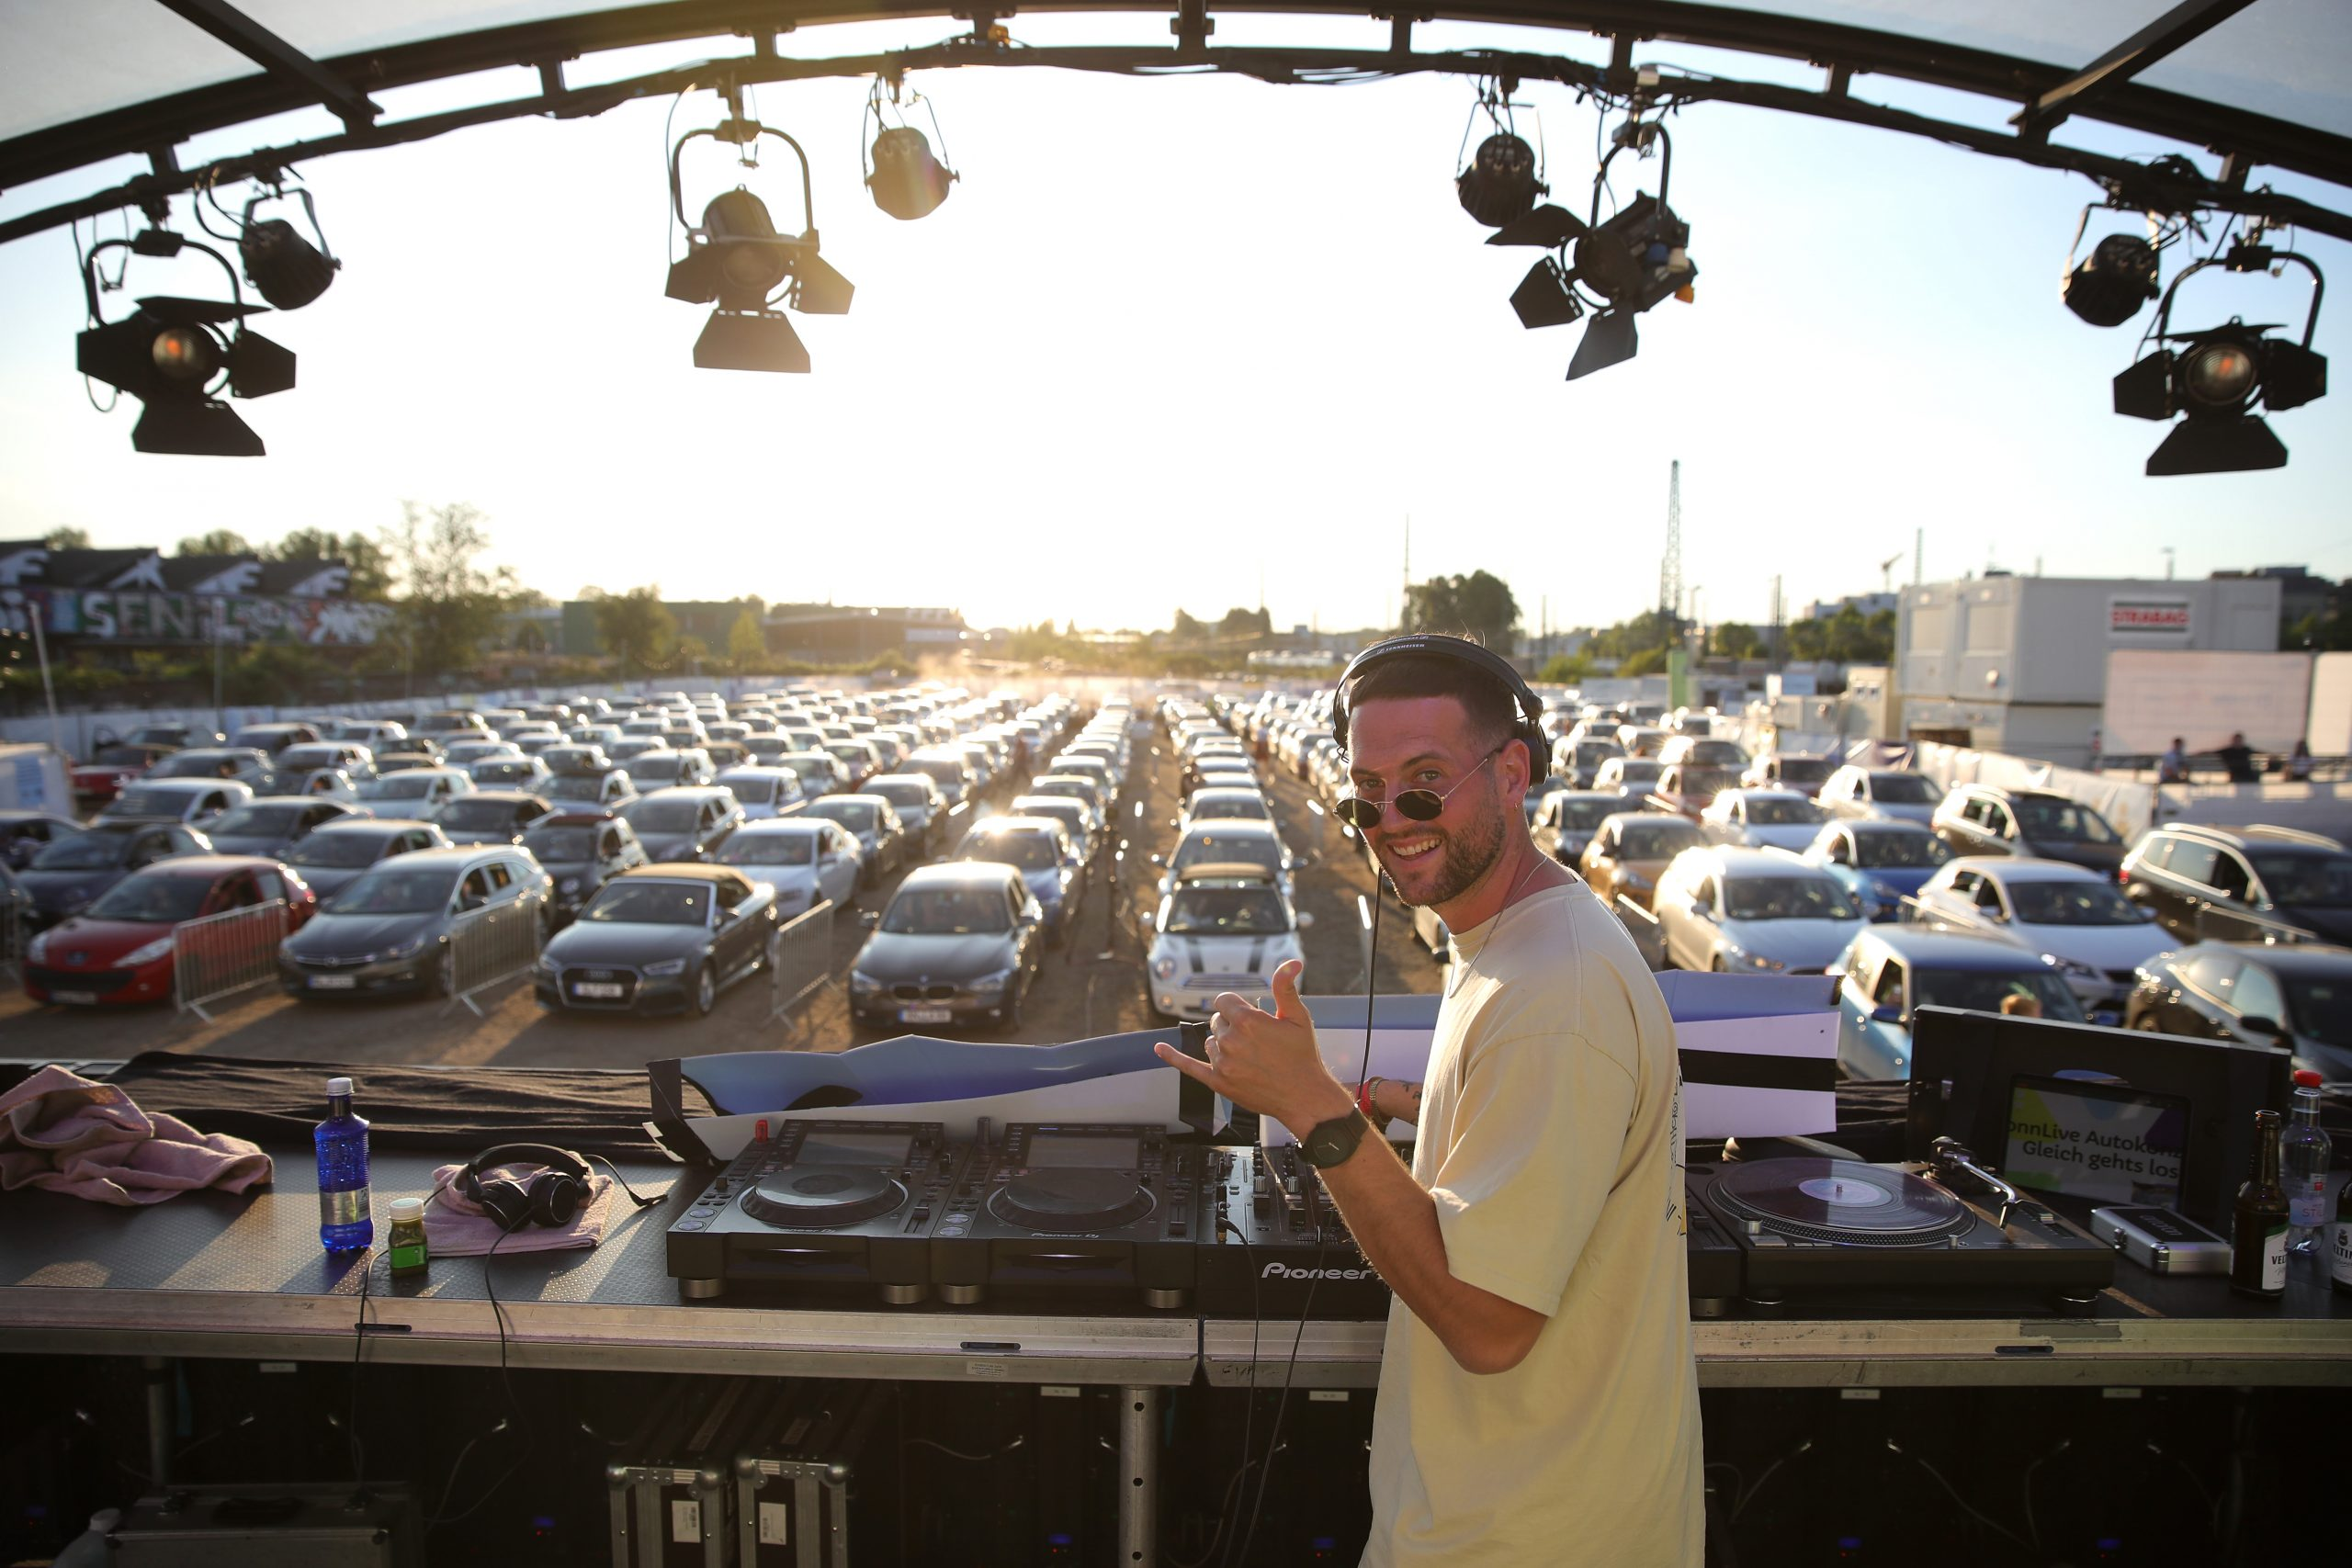 Drive In Concerts Arrive In Socal Offering A New Option For Music Fans